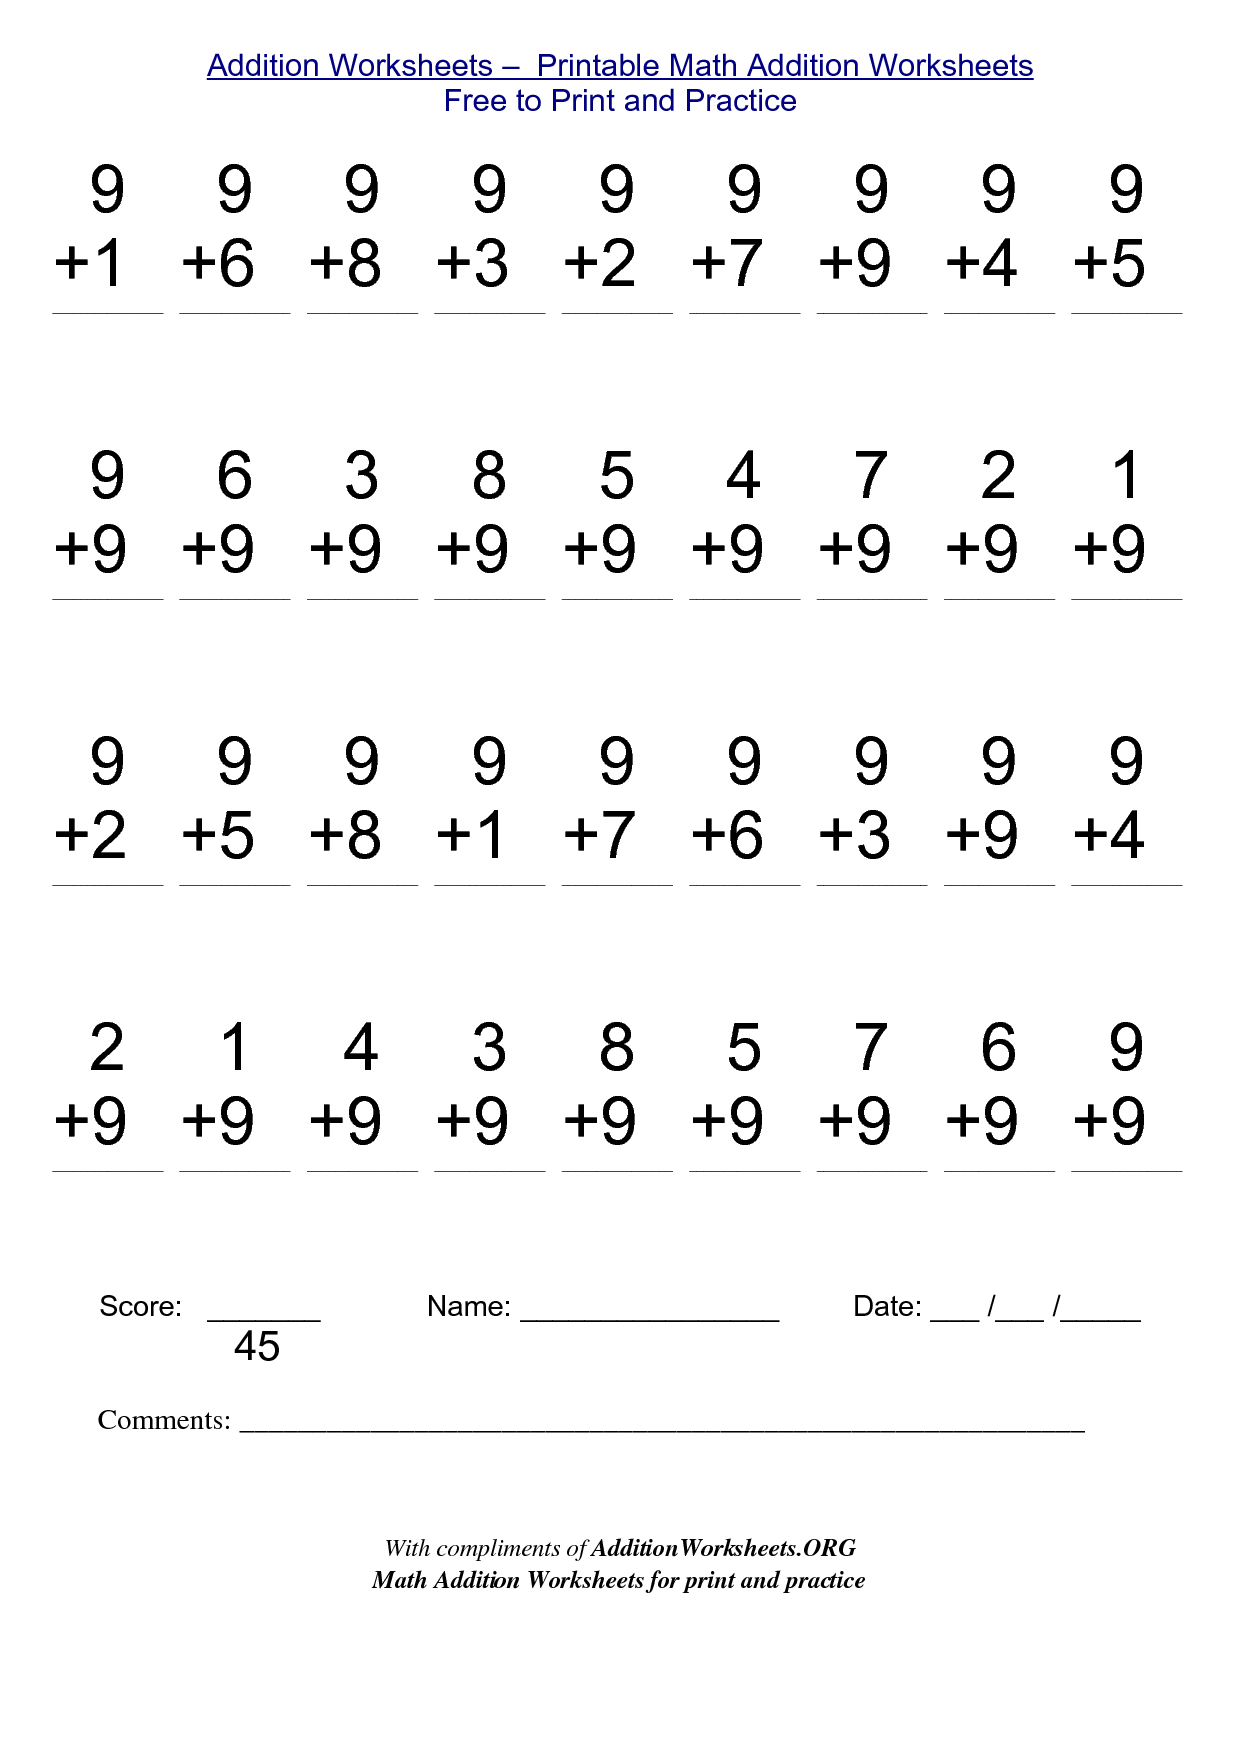 Worksheets Free Printable First Grade Math Worksheets singapore math kindergarten worksheets first grade addition printable free to print